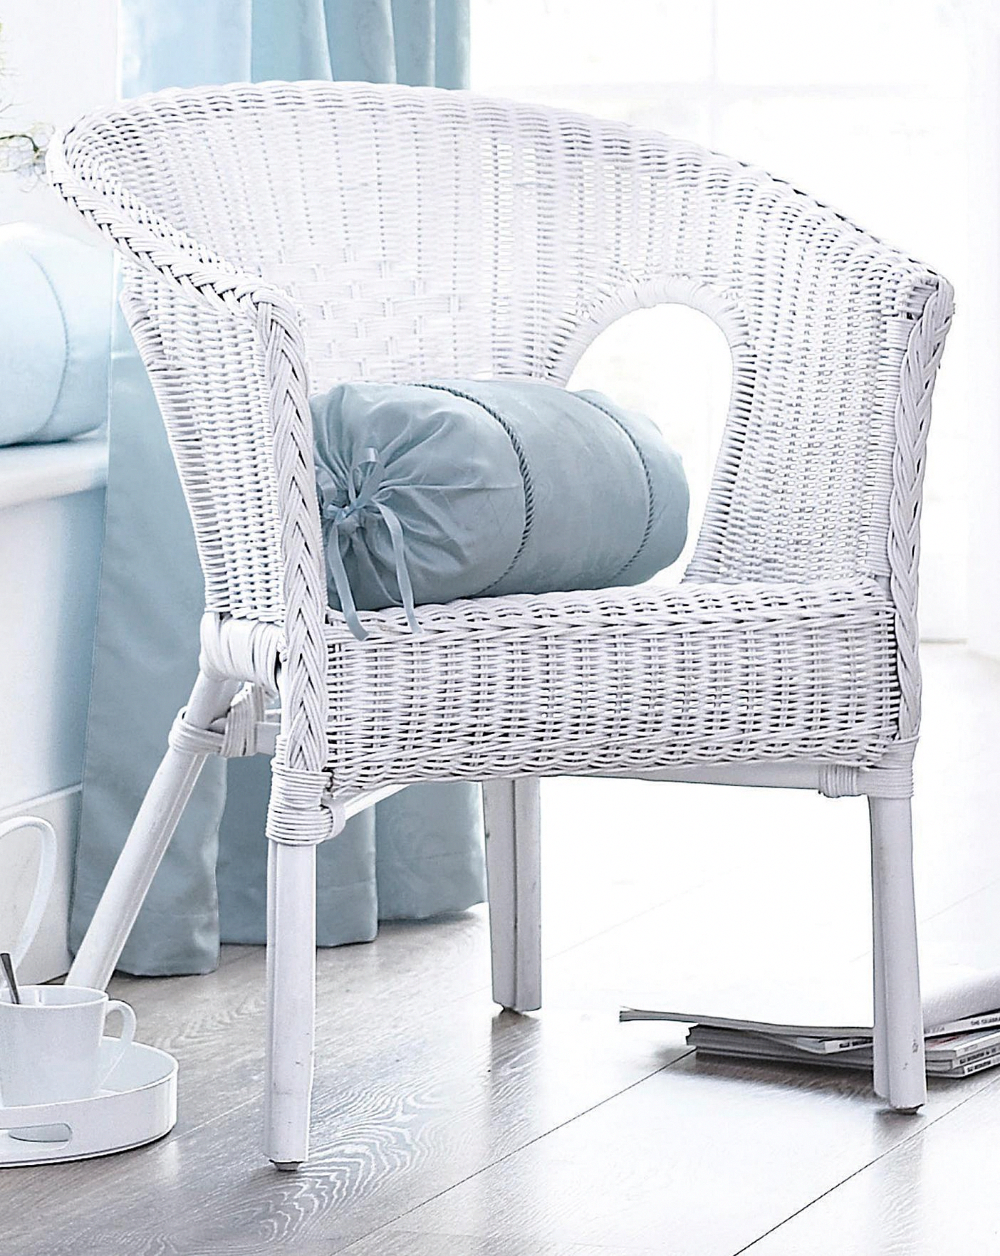 For Rent Chairs And Tables Chairsforsalefolding Product Id 2906794030 Nurserychairs White Wicker Bedroom Furniture Wicker Chair White Wicker Chair White wicker chairs for sale